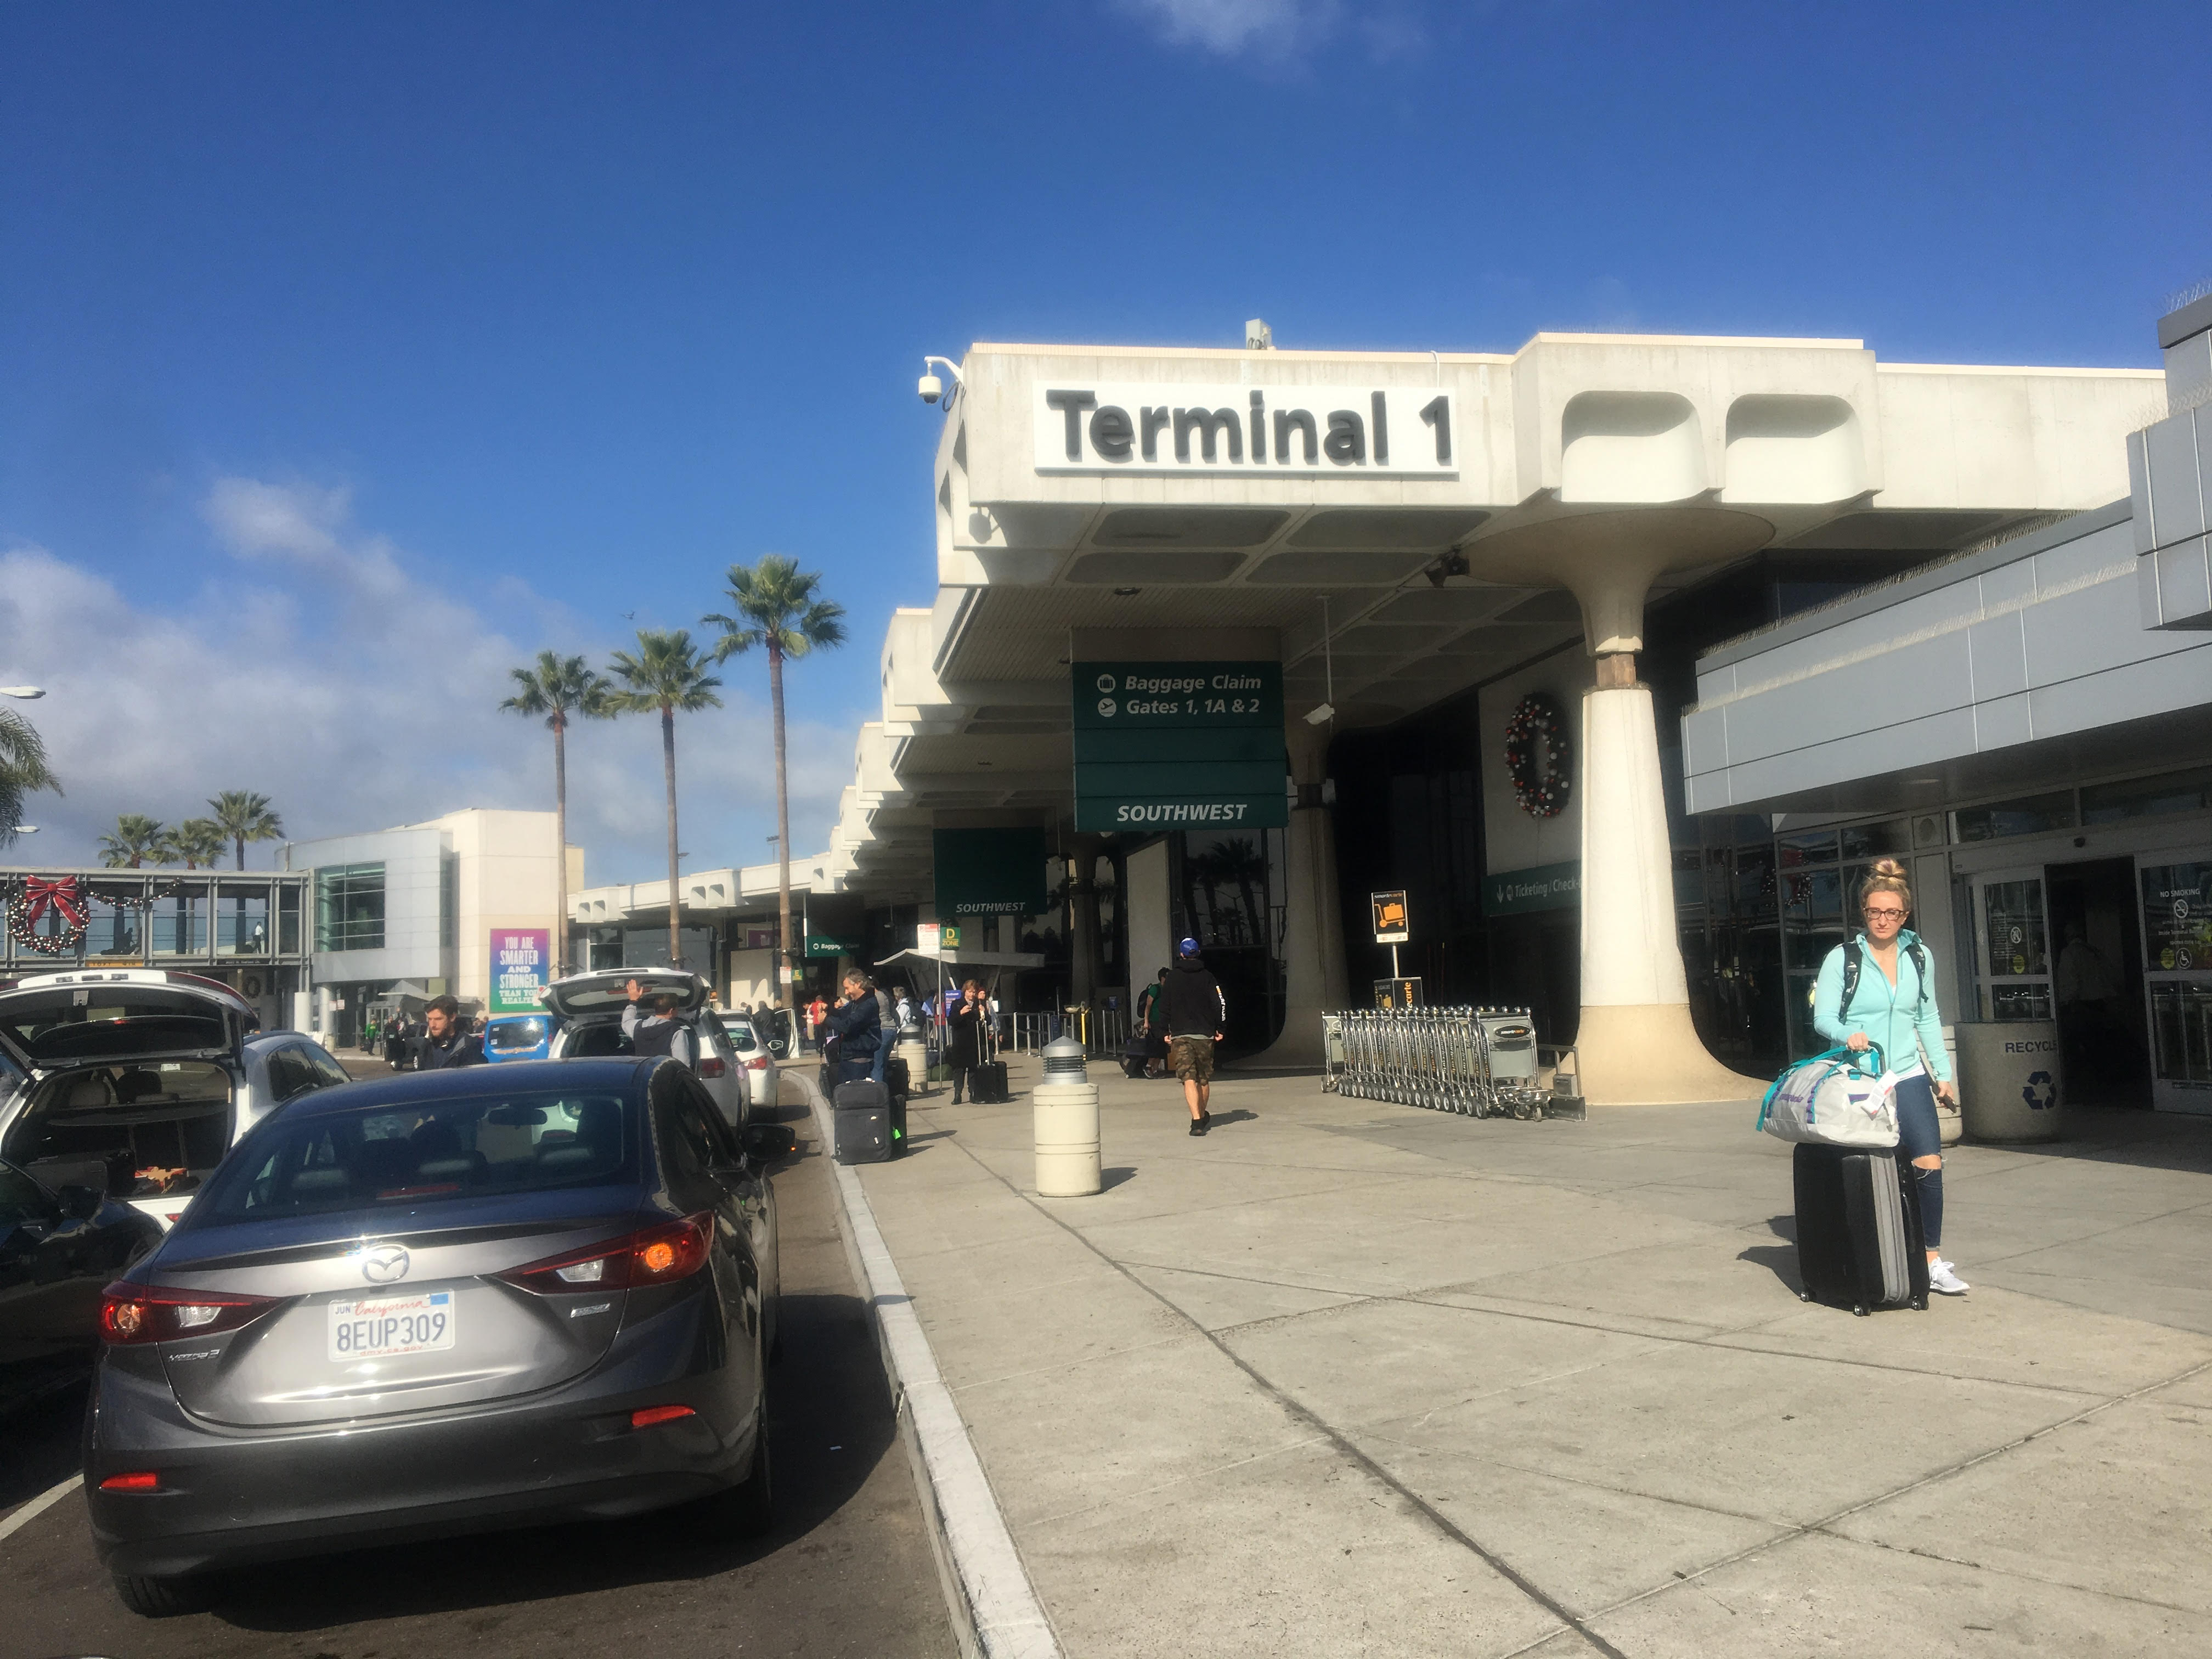 Roundtable: San Diego Airport's Crowded Terminal 1 Due For $3B Makeover